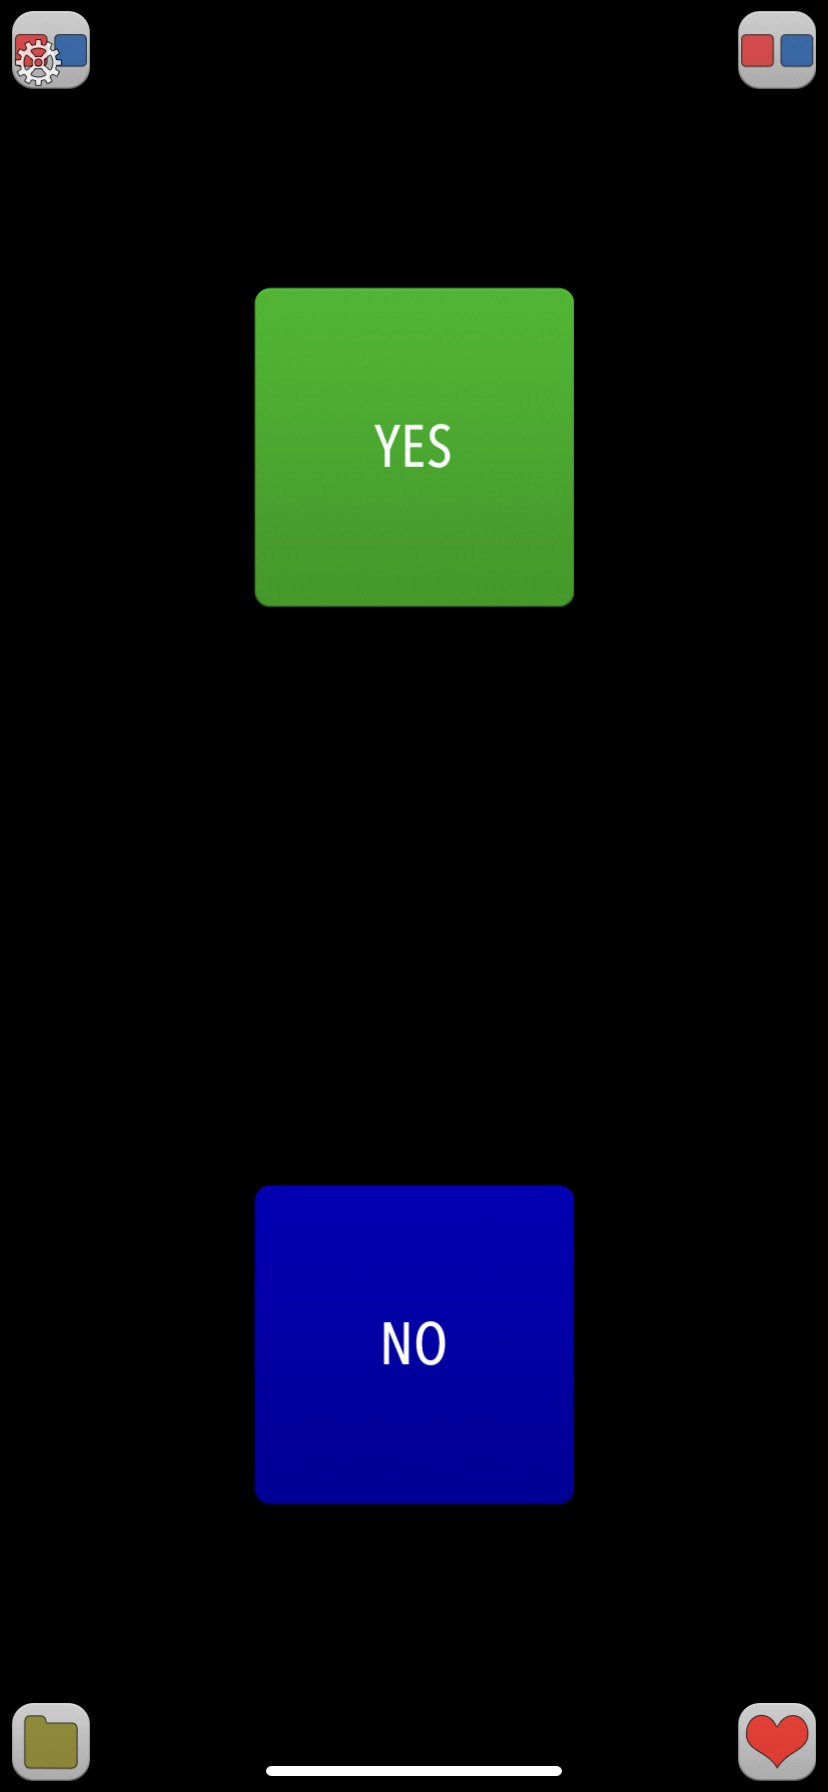 Screenshot displaying a customized large green 'Yes' square button and a large blue 'No' square button.